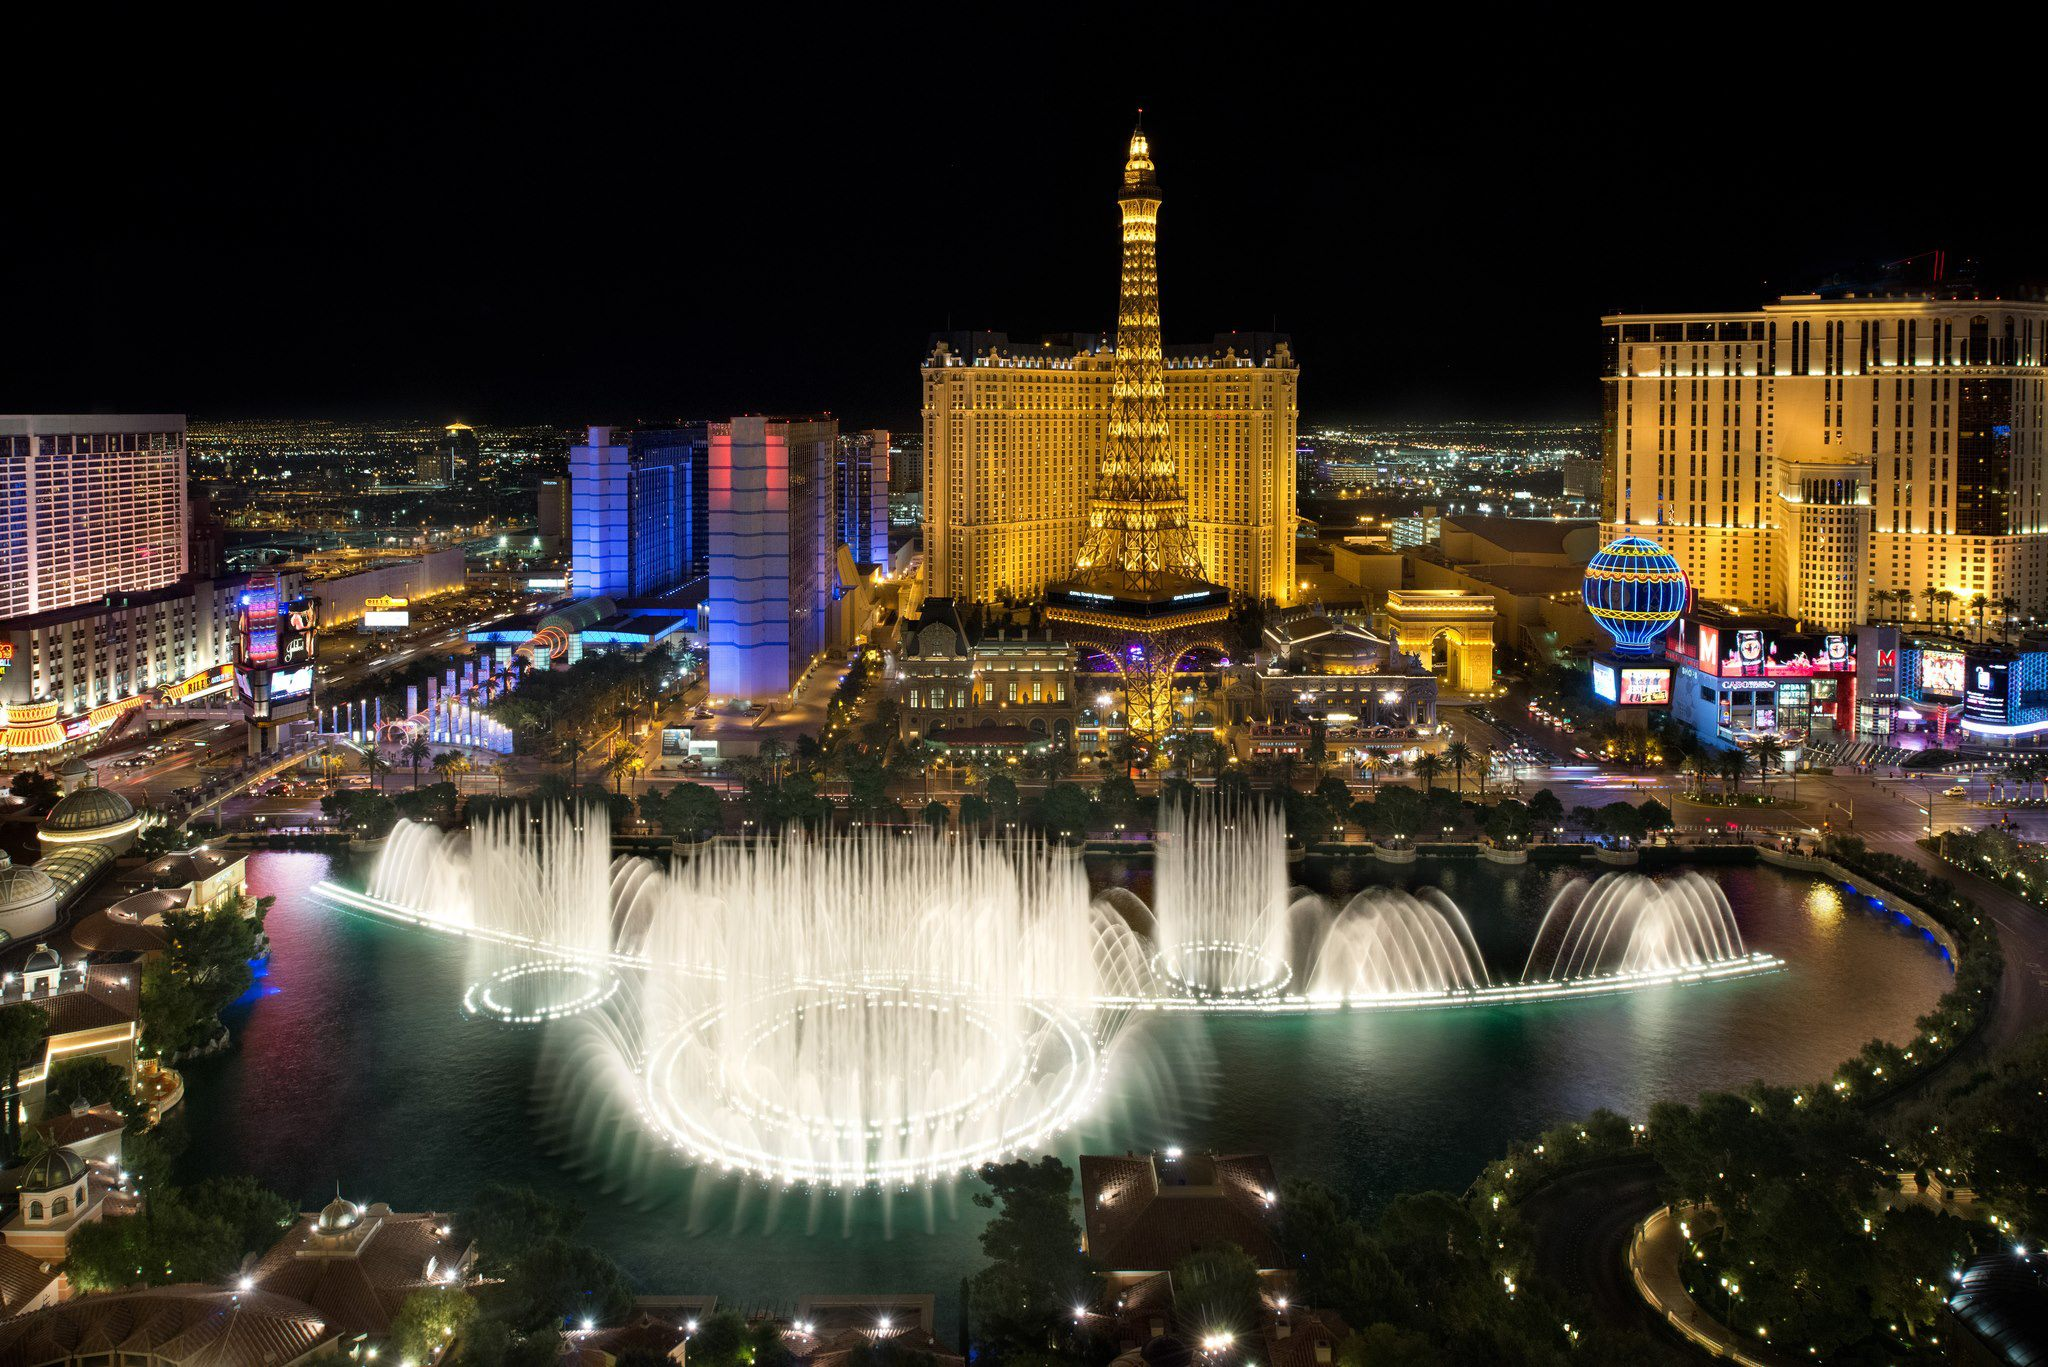 """O"" at Bellagio immerses audiences into a liquid dream world. Acrobats, synchronized swimmers, and aquatic characters fascinate in, on and above a million gallon pool! Rates start at $ before fees, taxes, and discount/5(11)."